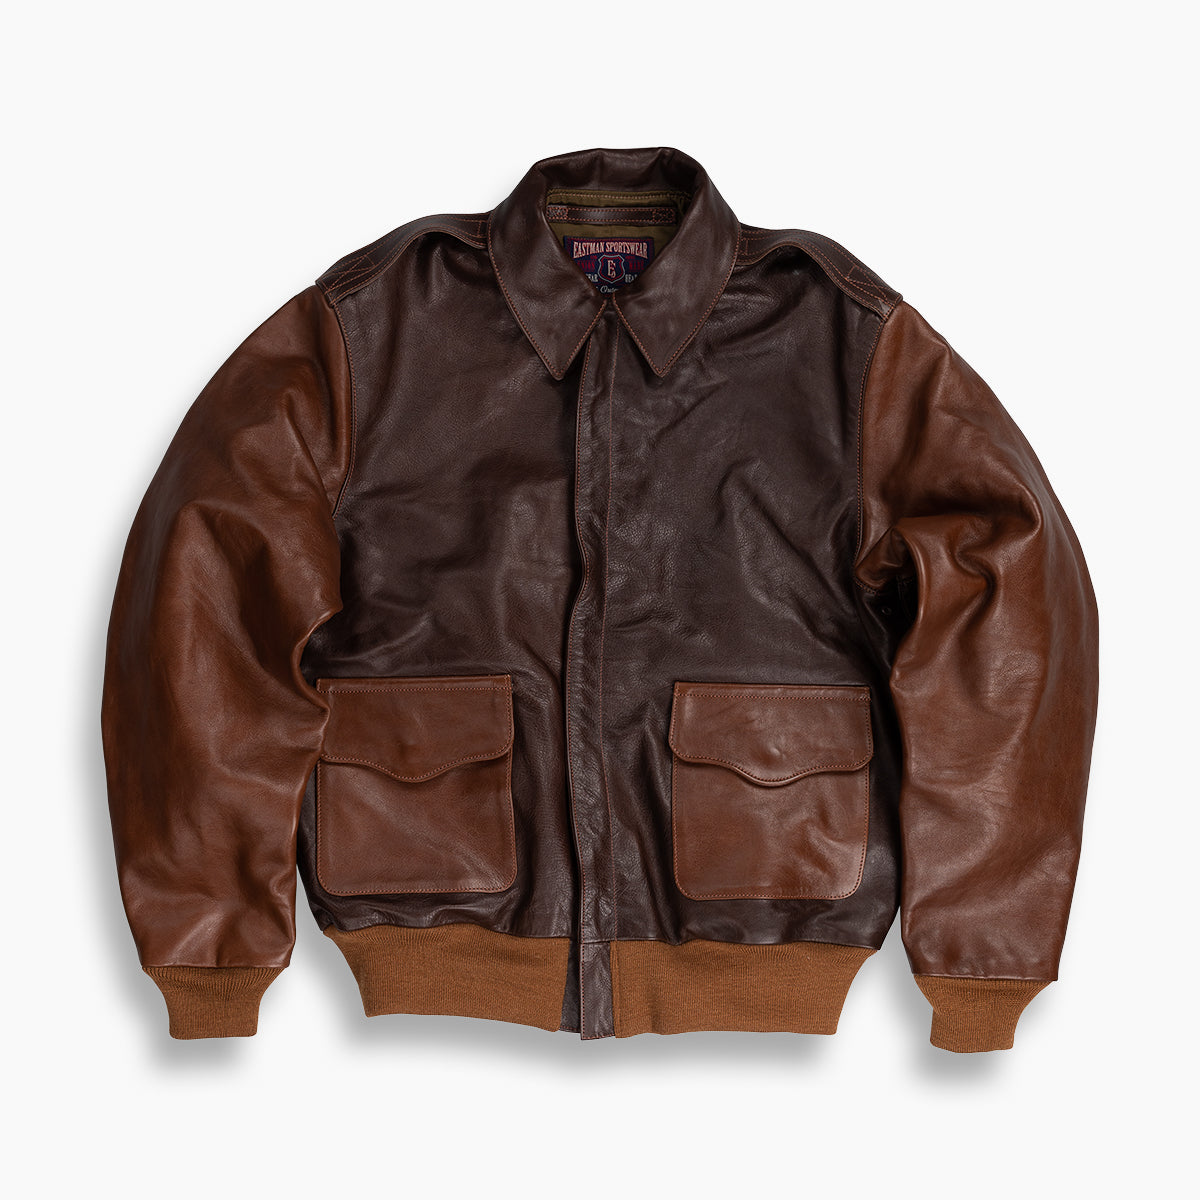 Mixed Batch A-2 Flight Jacket